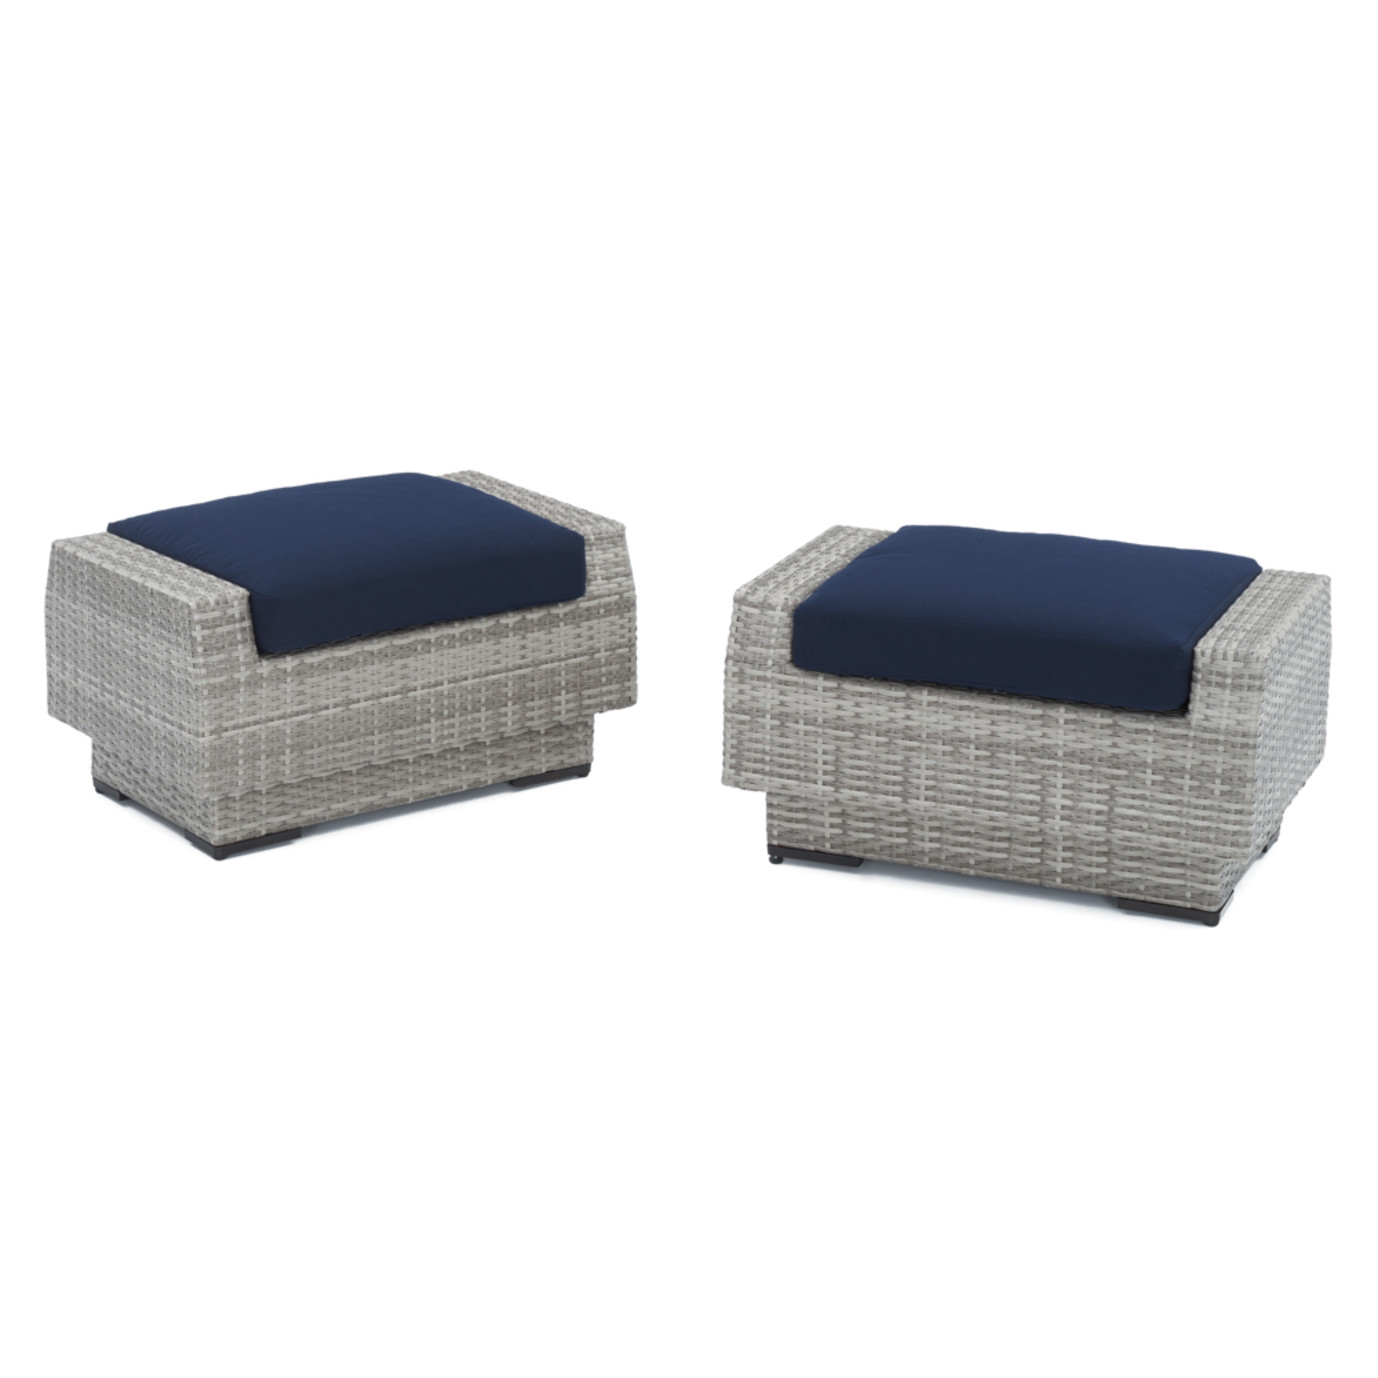 Cannes™ Club Ottomans - Navy Blue